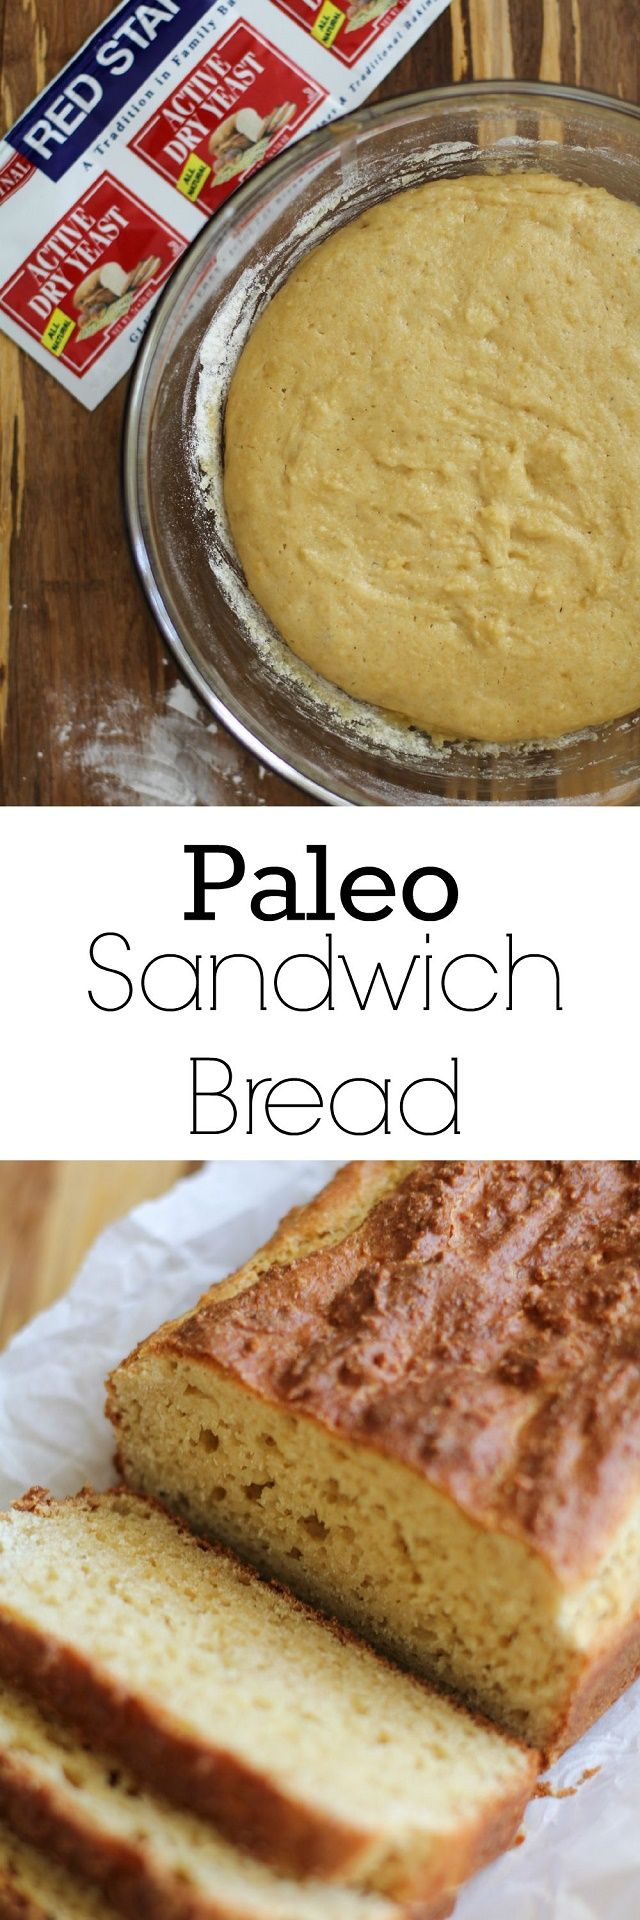 Paleo Sandwich Bread - made with almond flour and tapioca flour | TheRoastedRoot.net #glutenfree #lunch #recipe